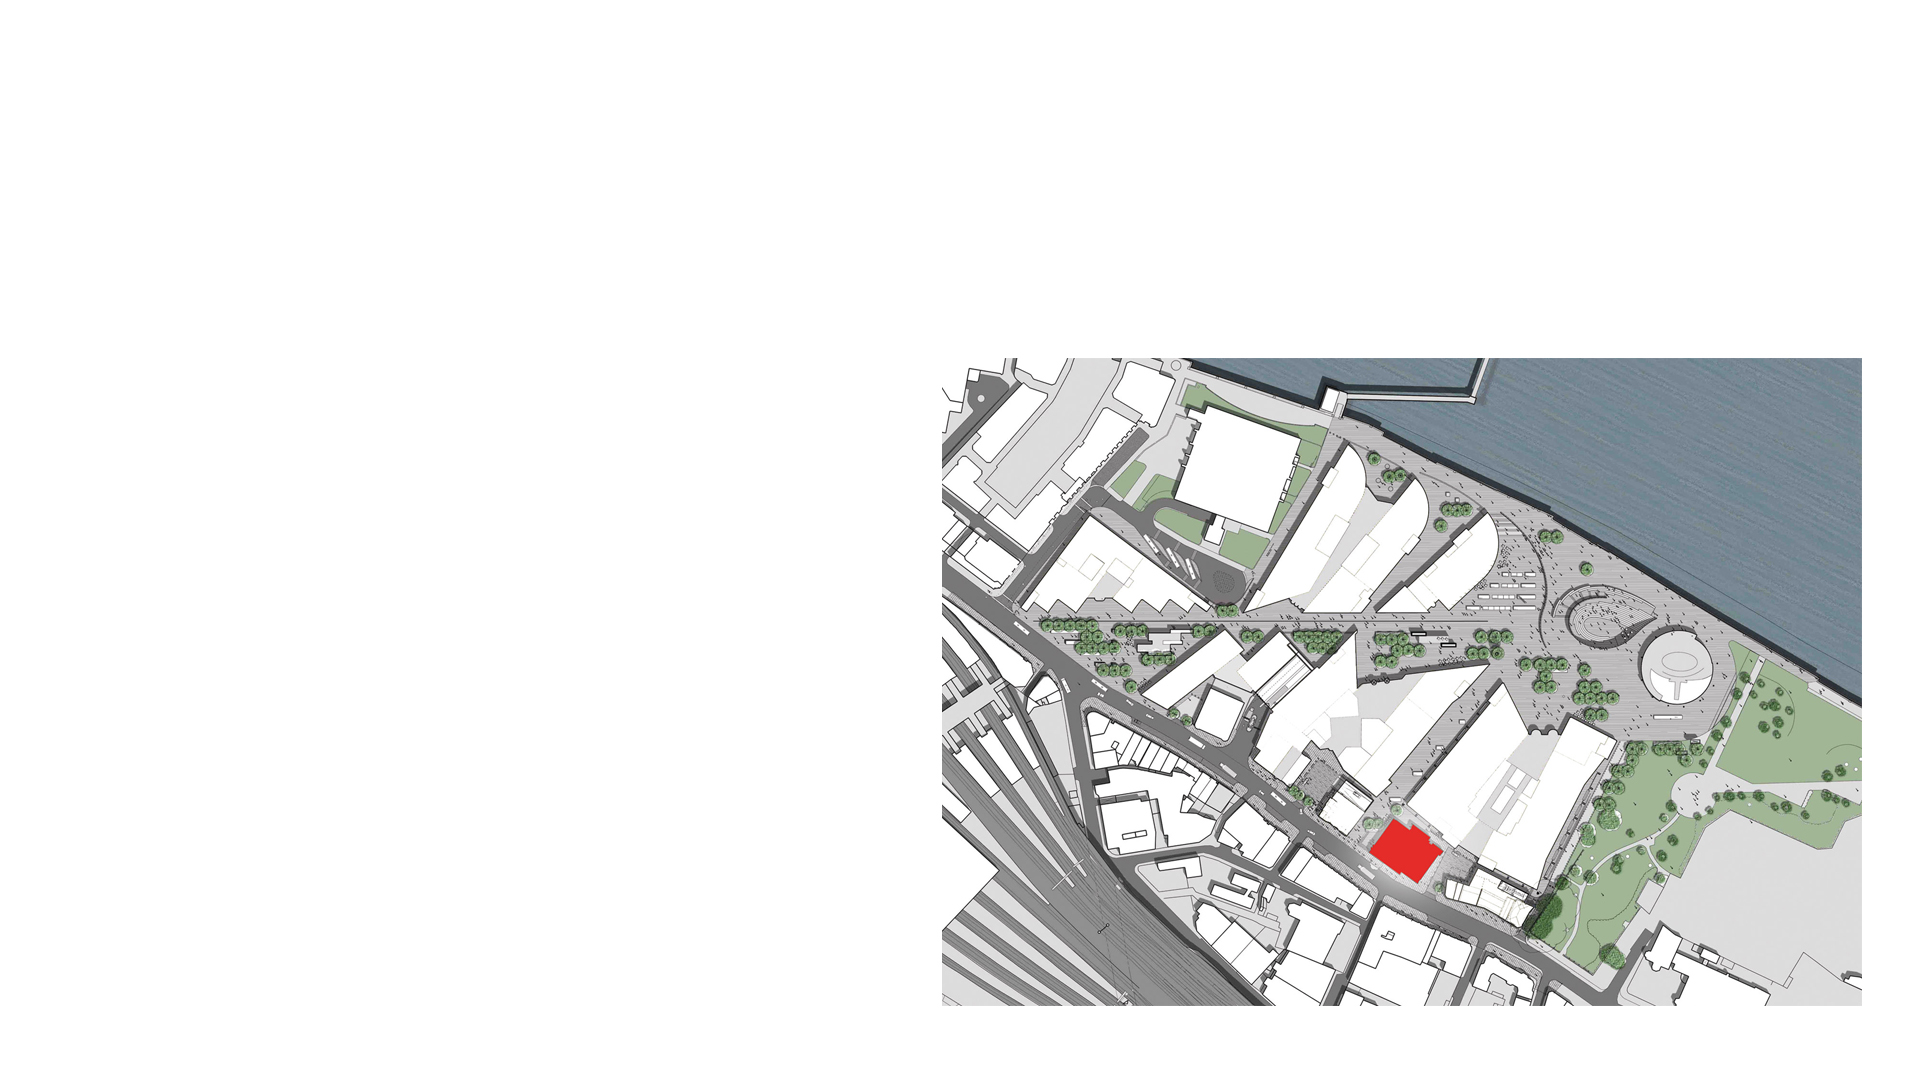 Unicorn Theatre Site Location Plan and River Thames. The circular building adjacent the river is London's City Hall.